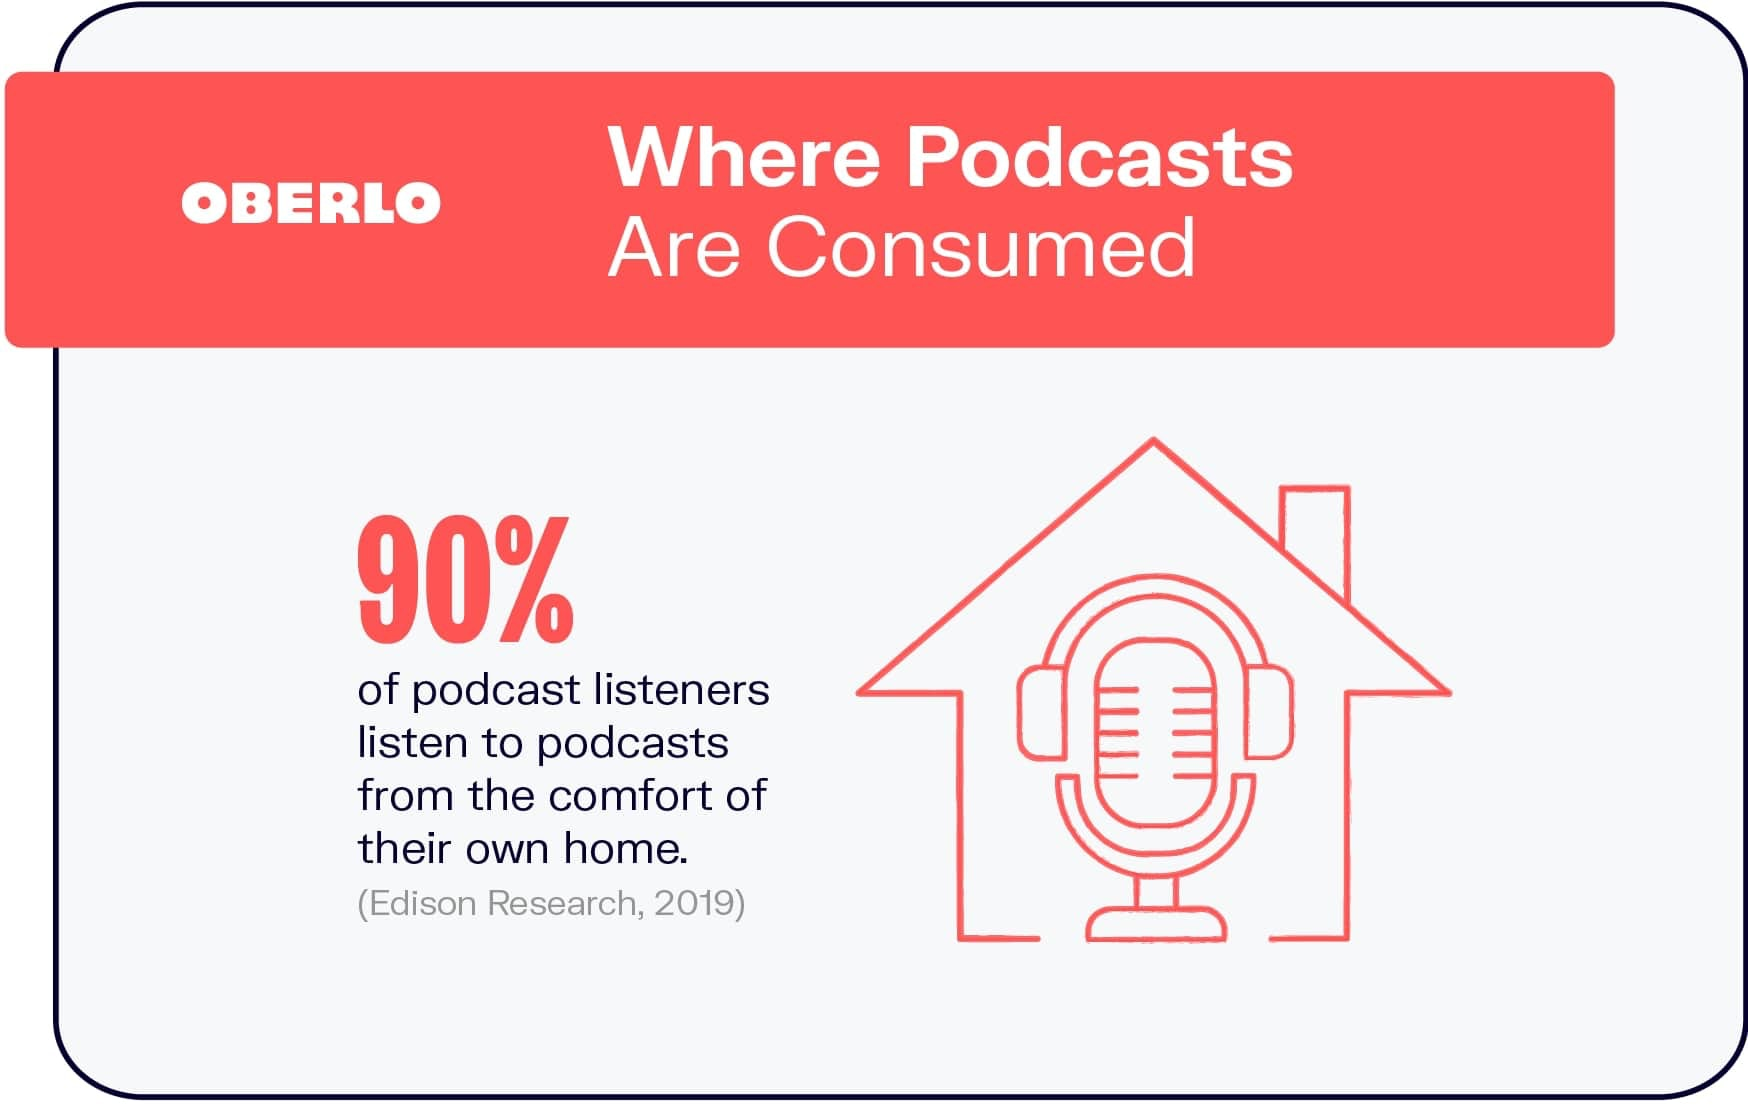 Where Podcasts Are Consumed